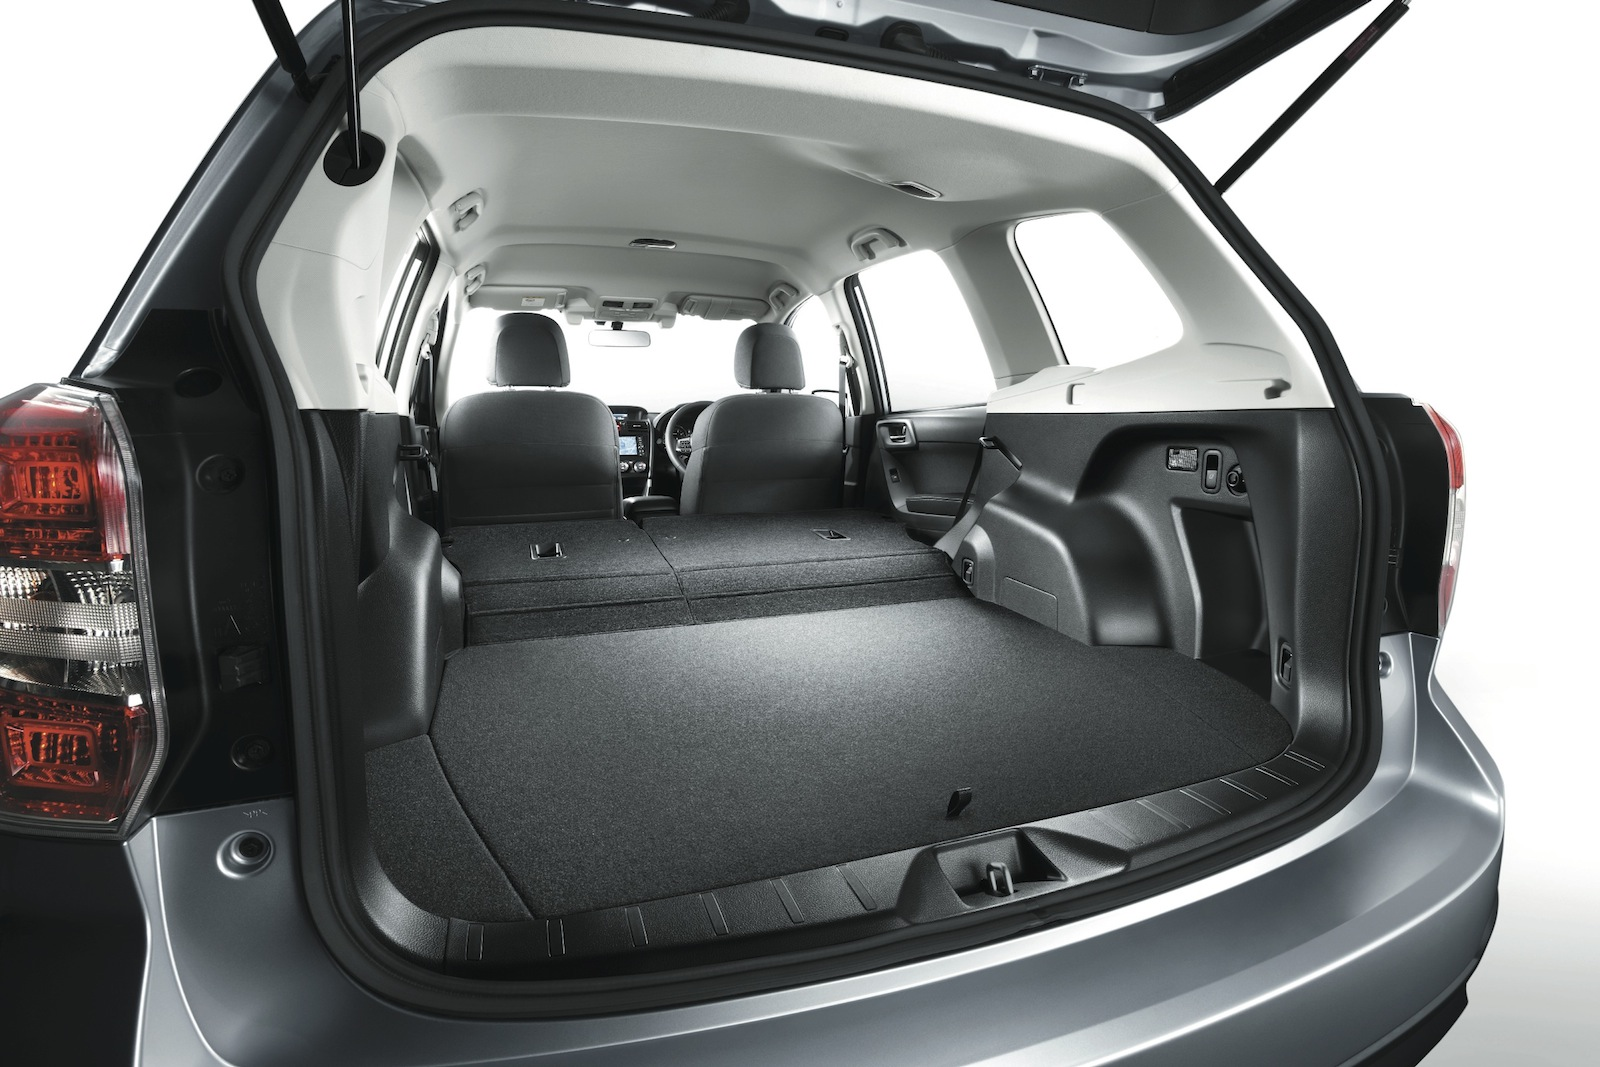 2013 Subaru Forester Interior Revealed In Full Image Gallery Photos 1 Of 18